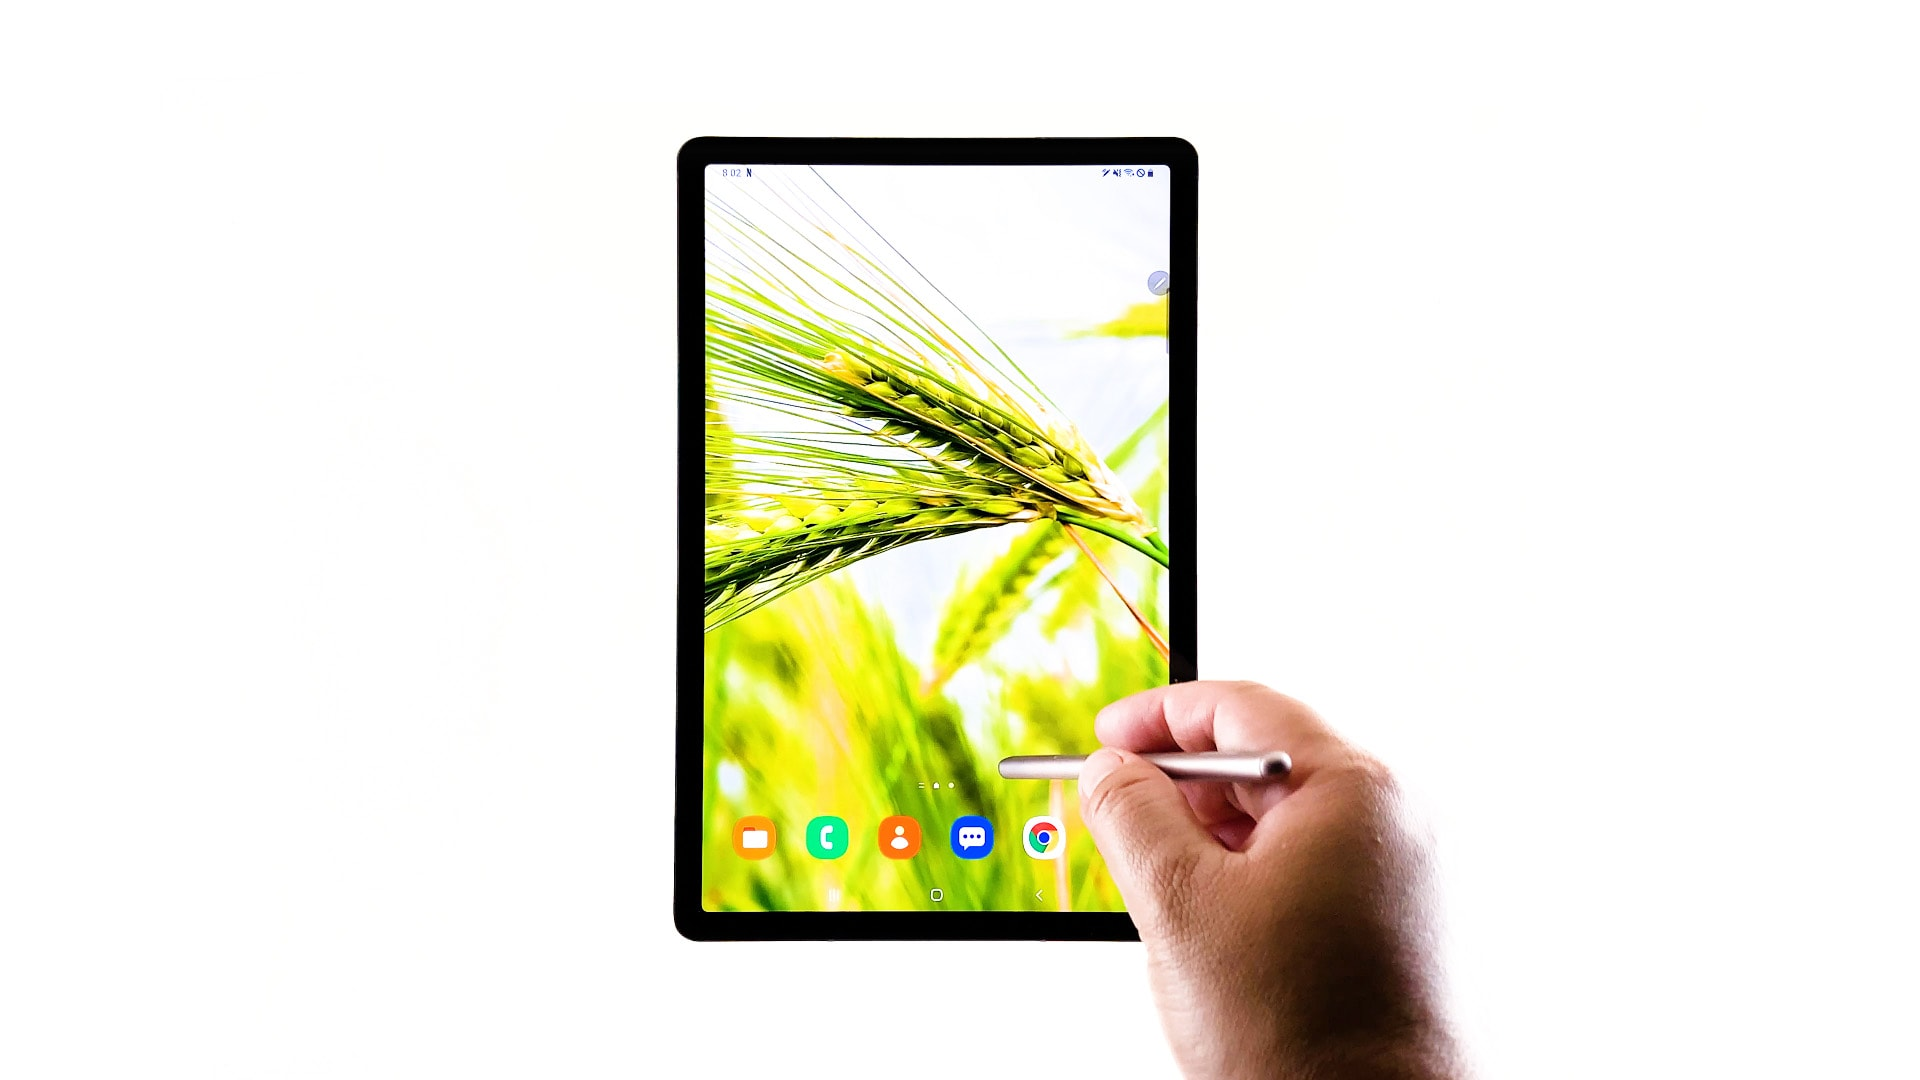 enable bluetooth tethering galaxy tab s6 - home